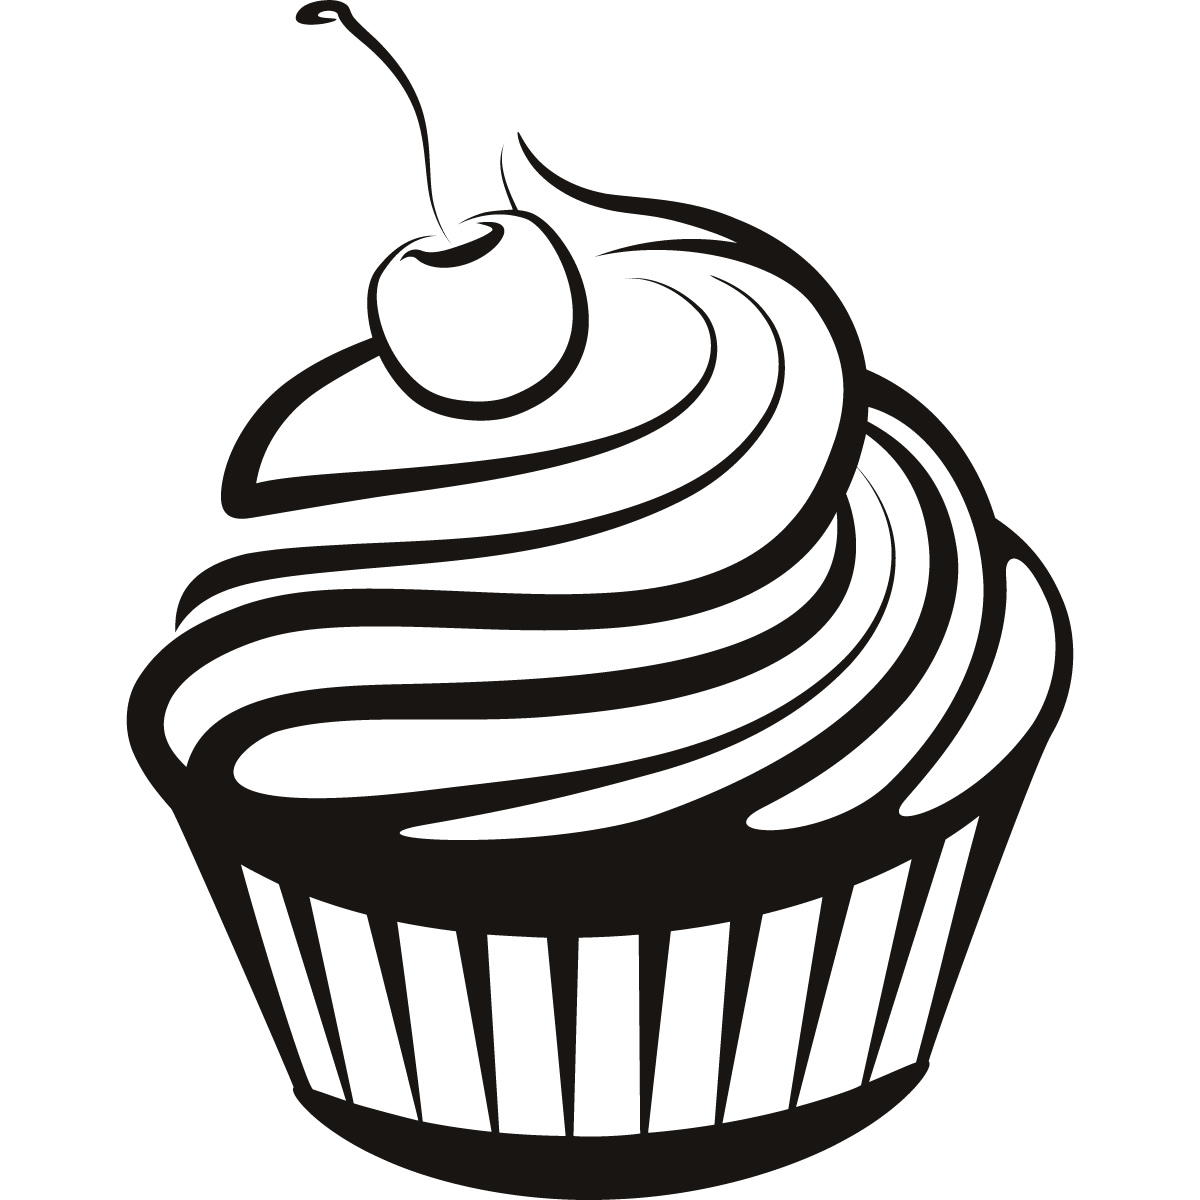 1200x1200 Cupcake Drawings And Cupcakes Clipart